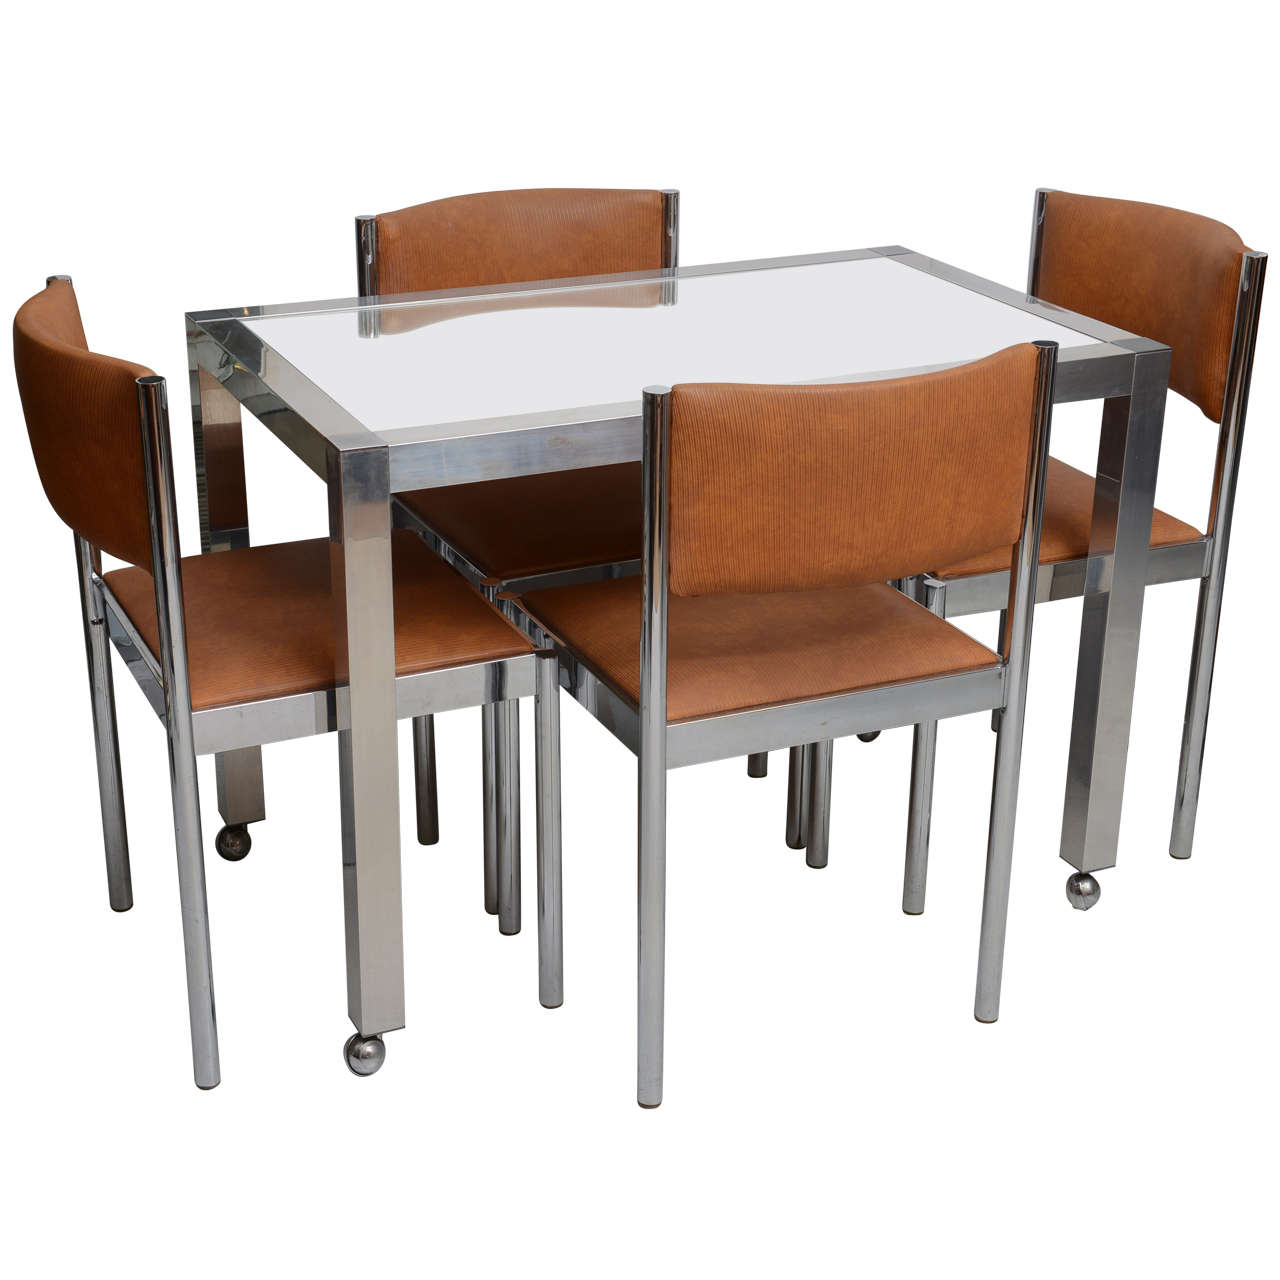 Chrome And Glass Table With 4 Chrome Upholstered Chairs